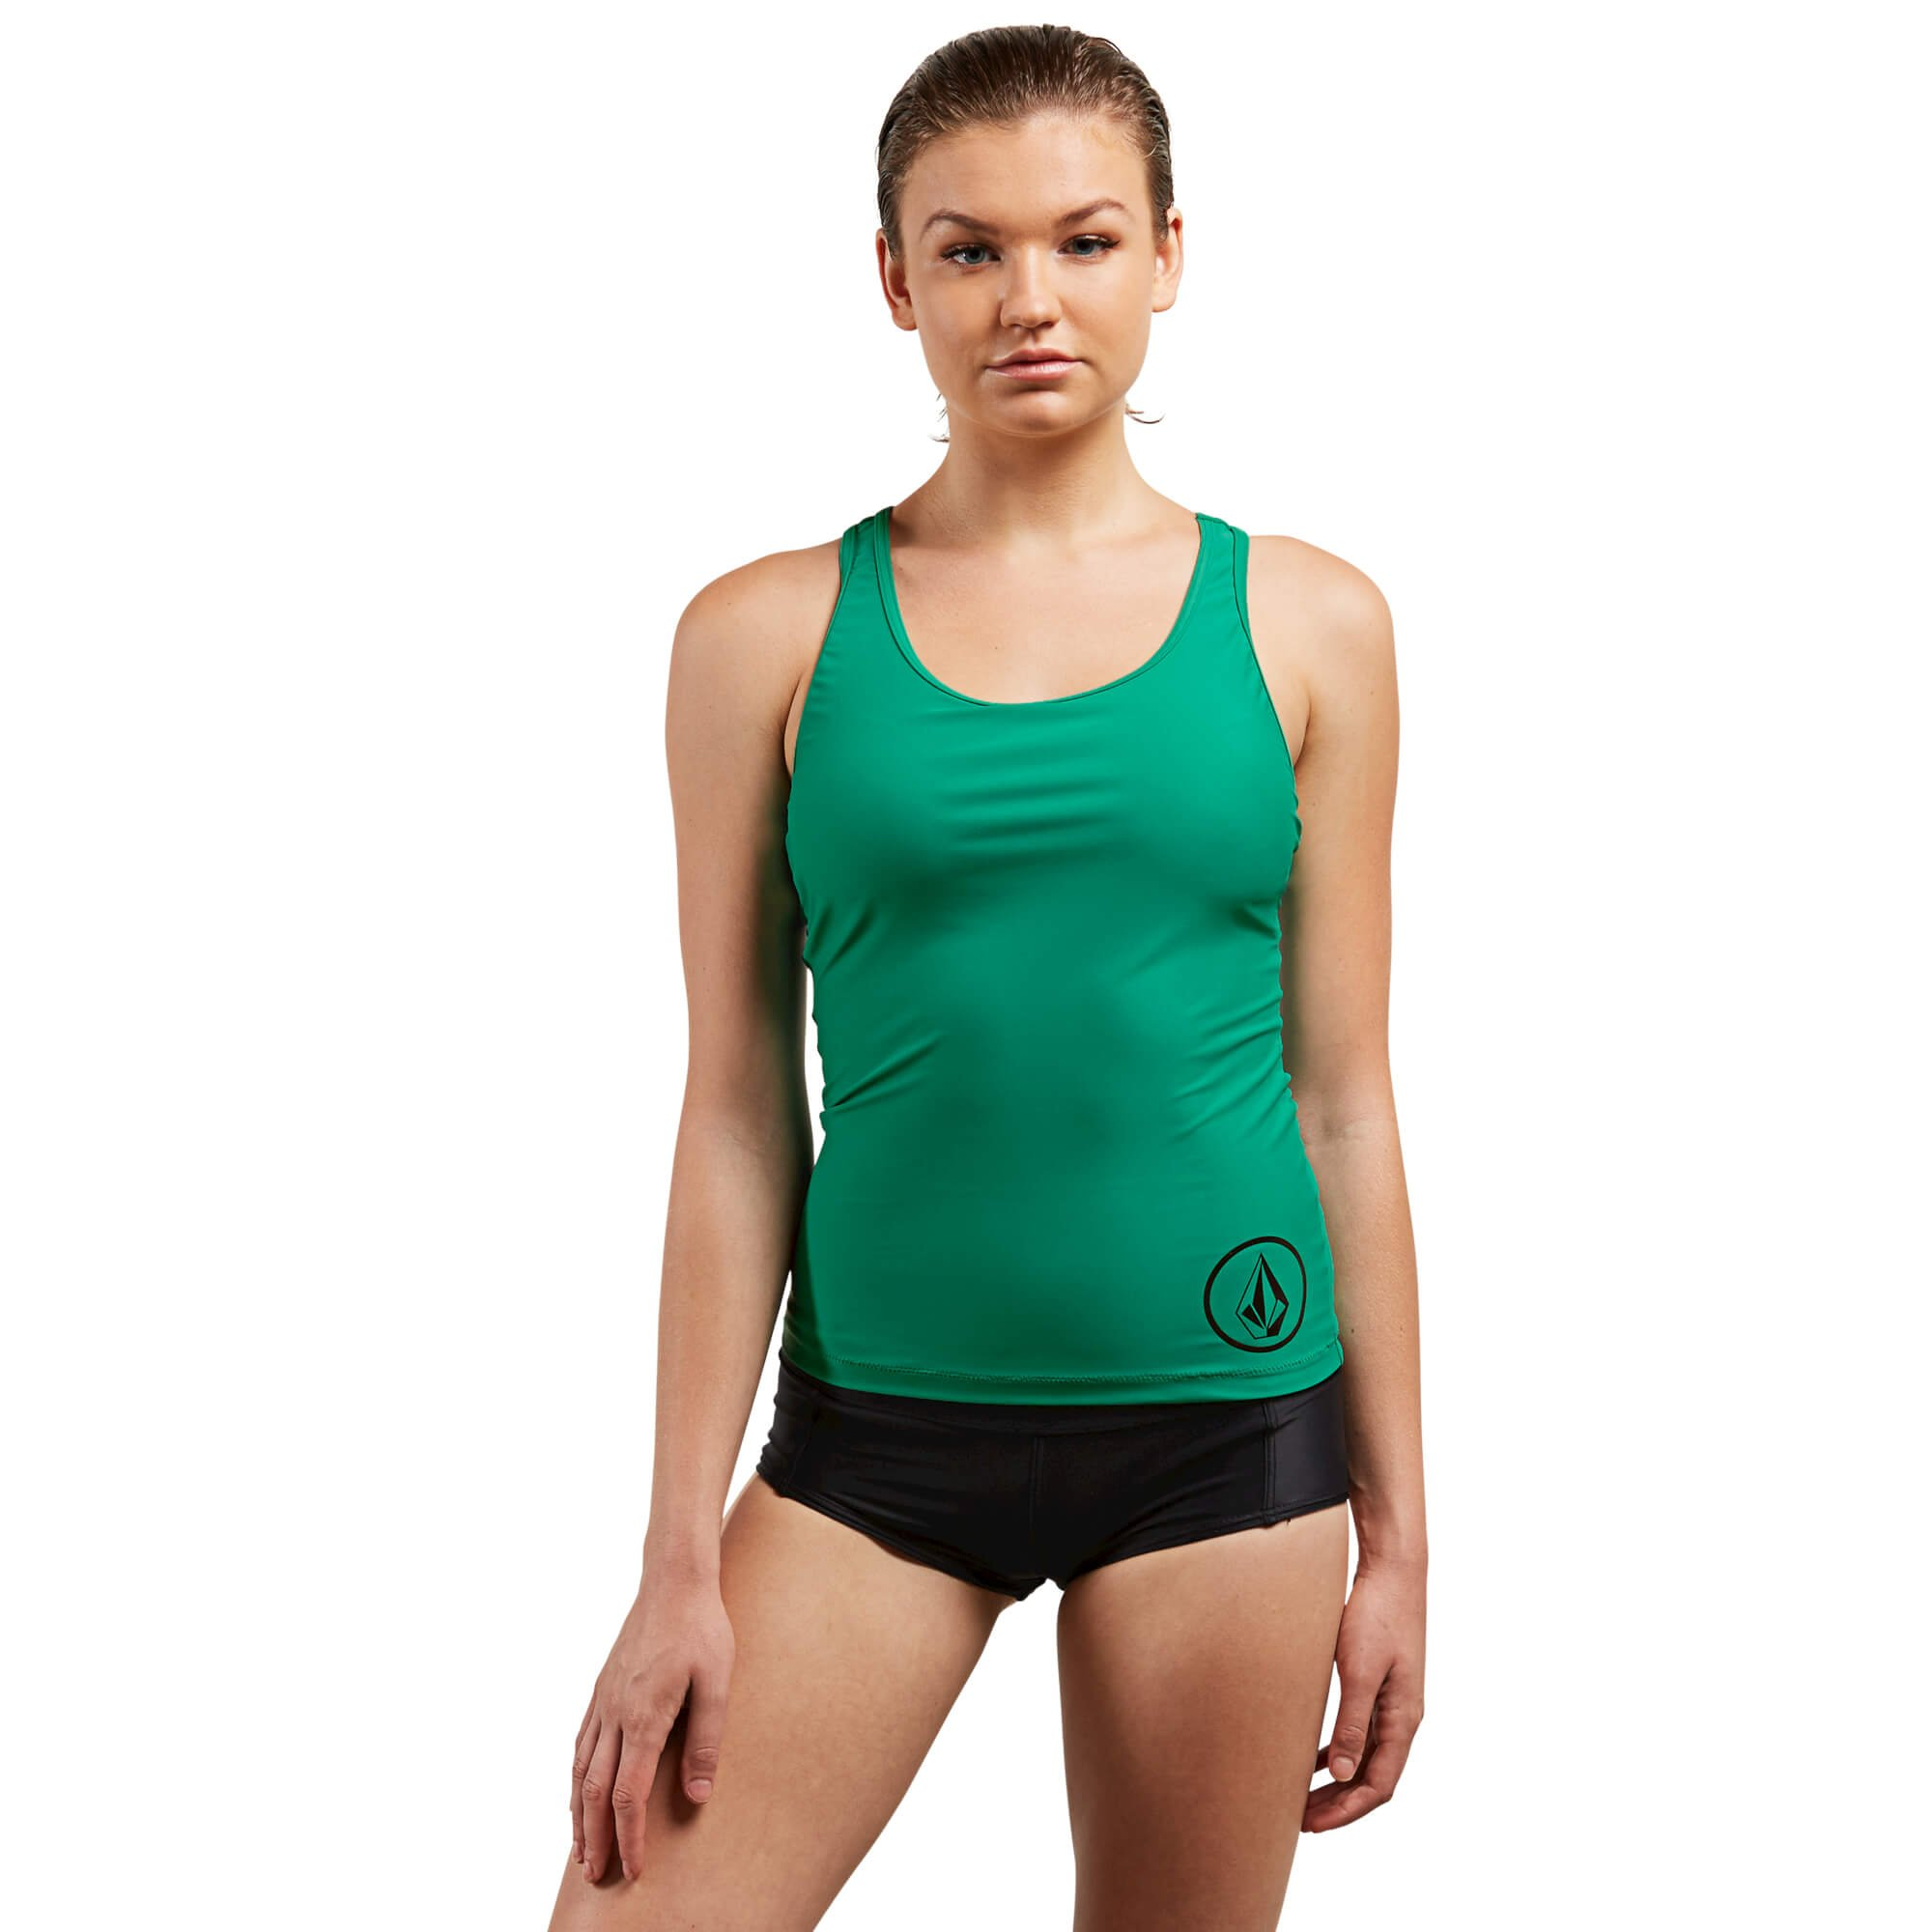 Volcom Women's Simply Solid Racerback Sporty Swimsuit Tankini Top, Green Spray, Extra Large